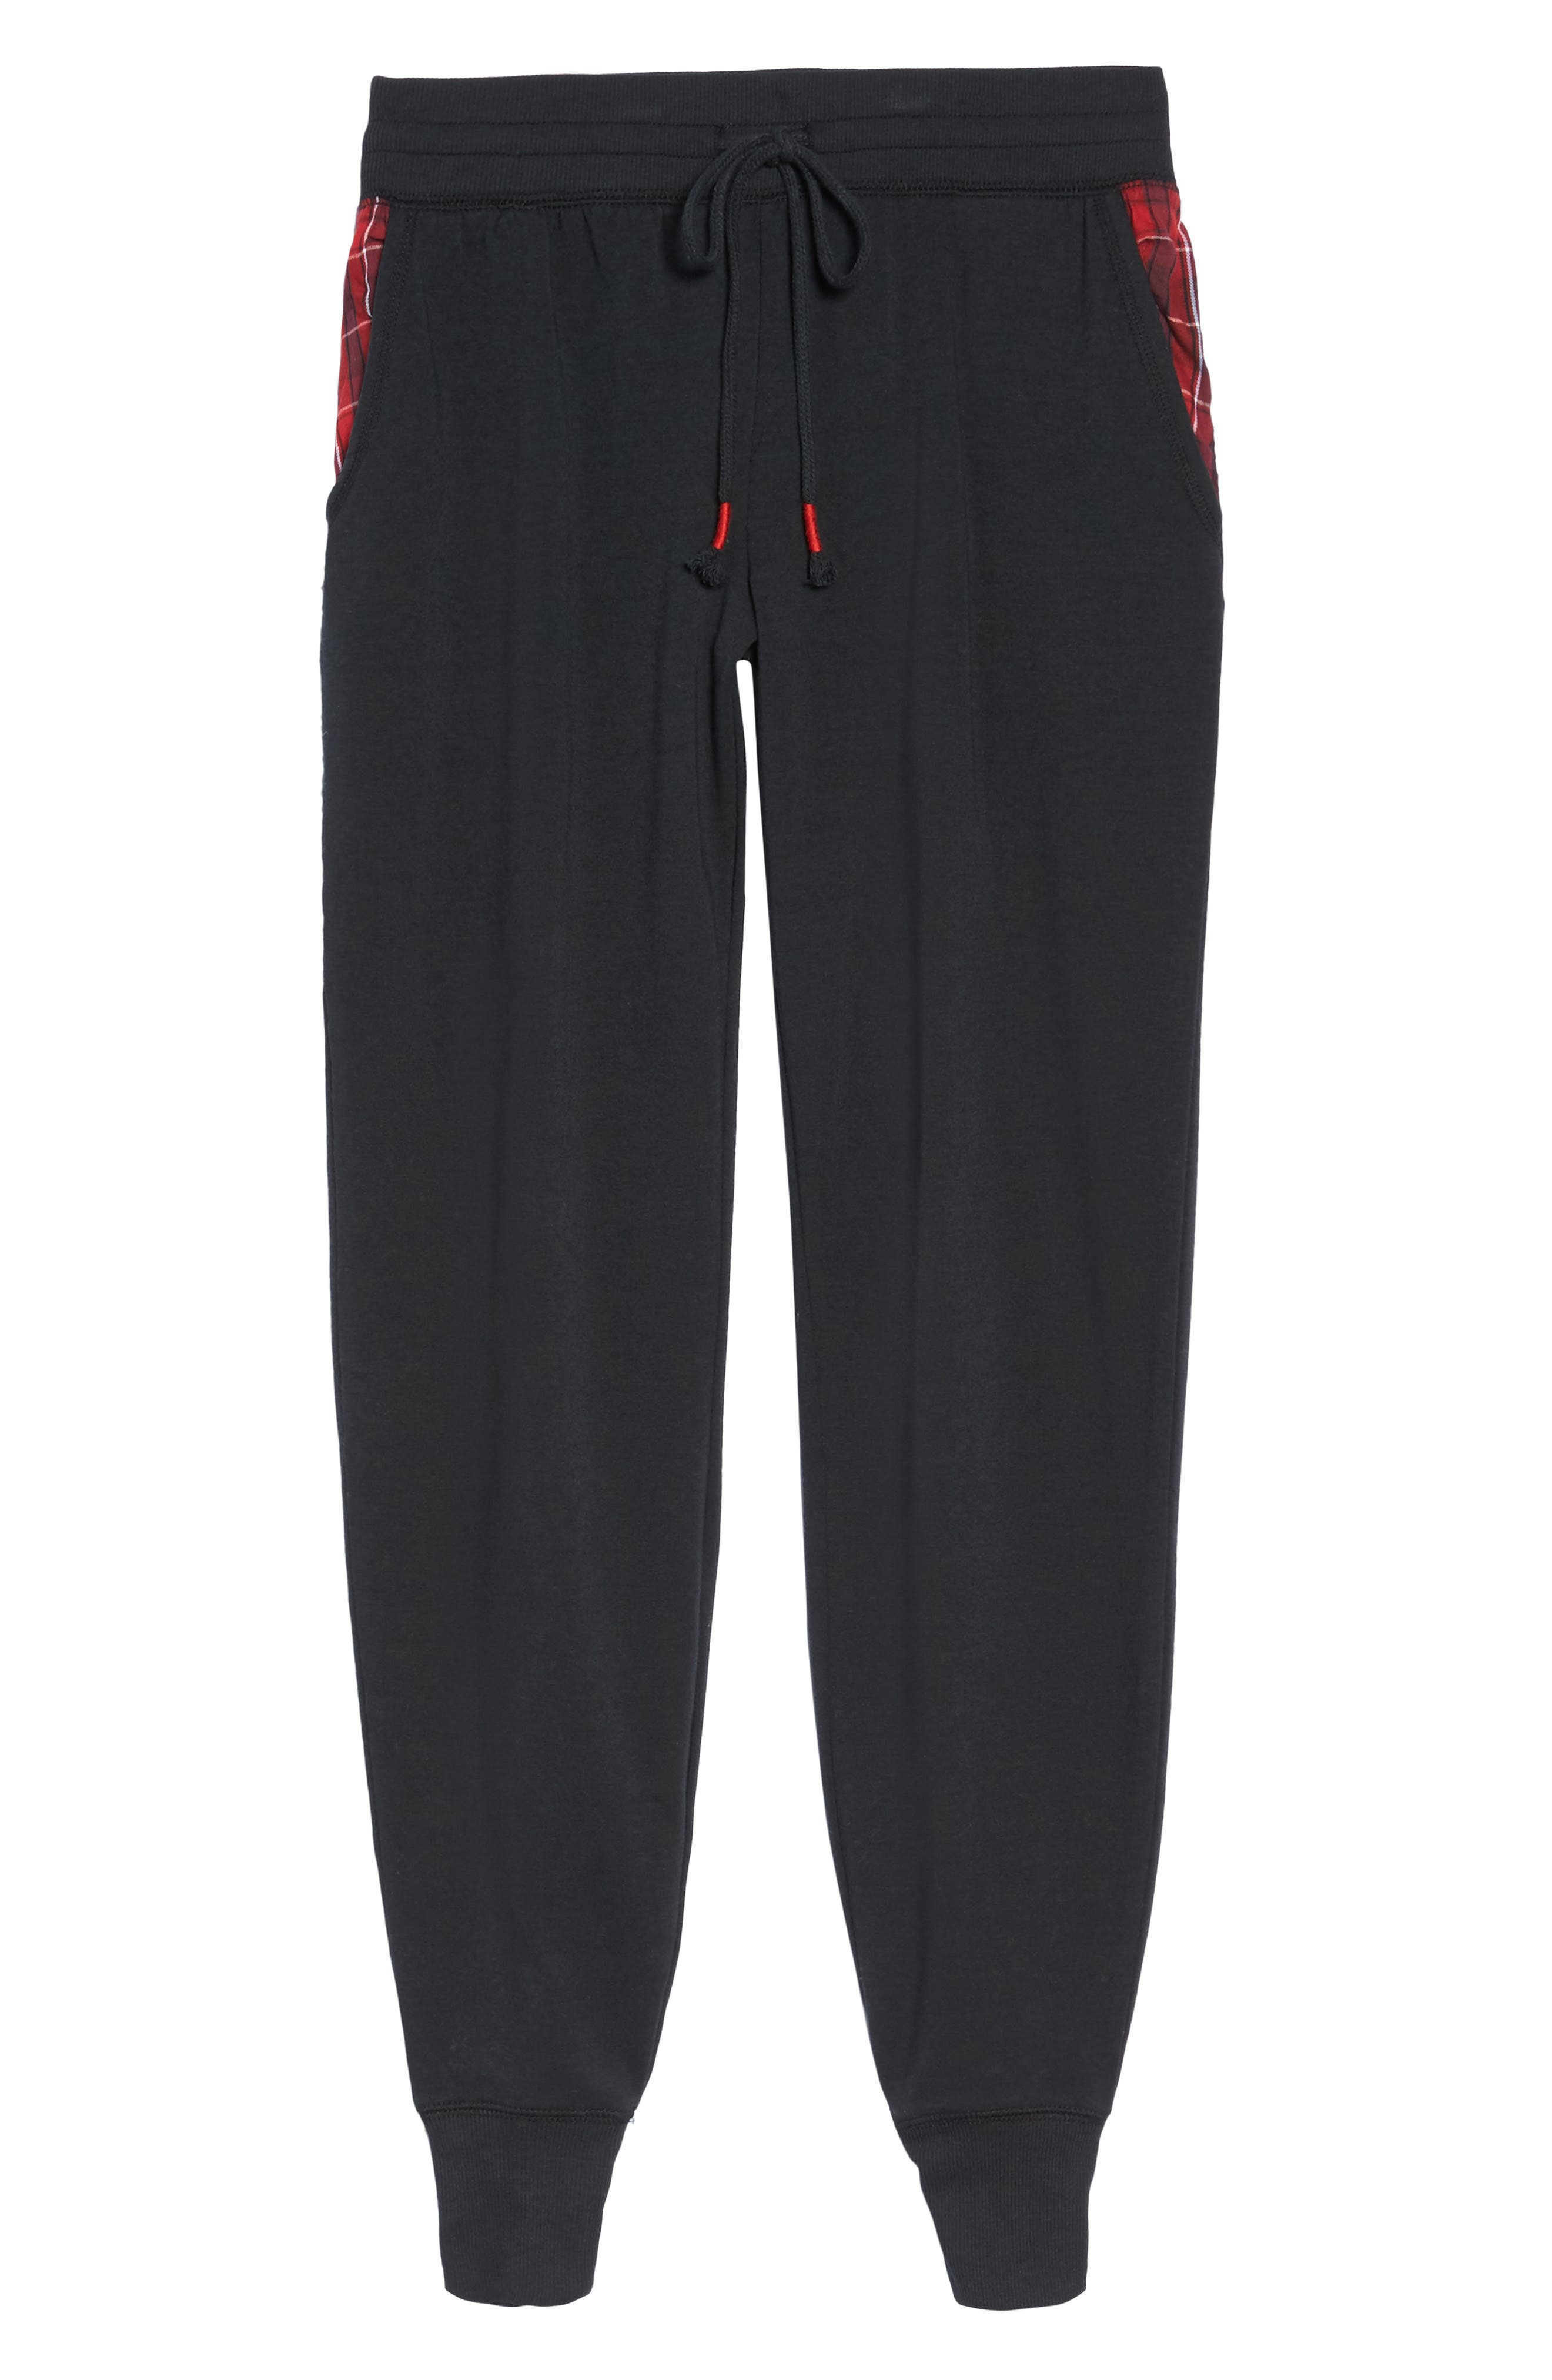 Lounge Jogger Pants,                             Alternate thumbnail 6, color,                             001